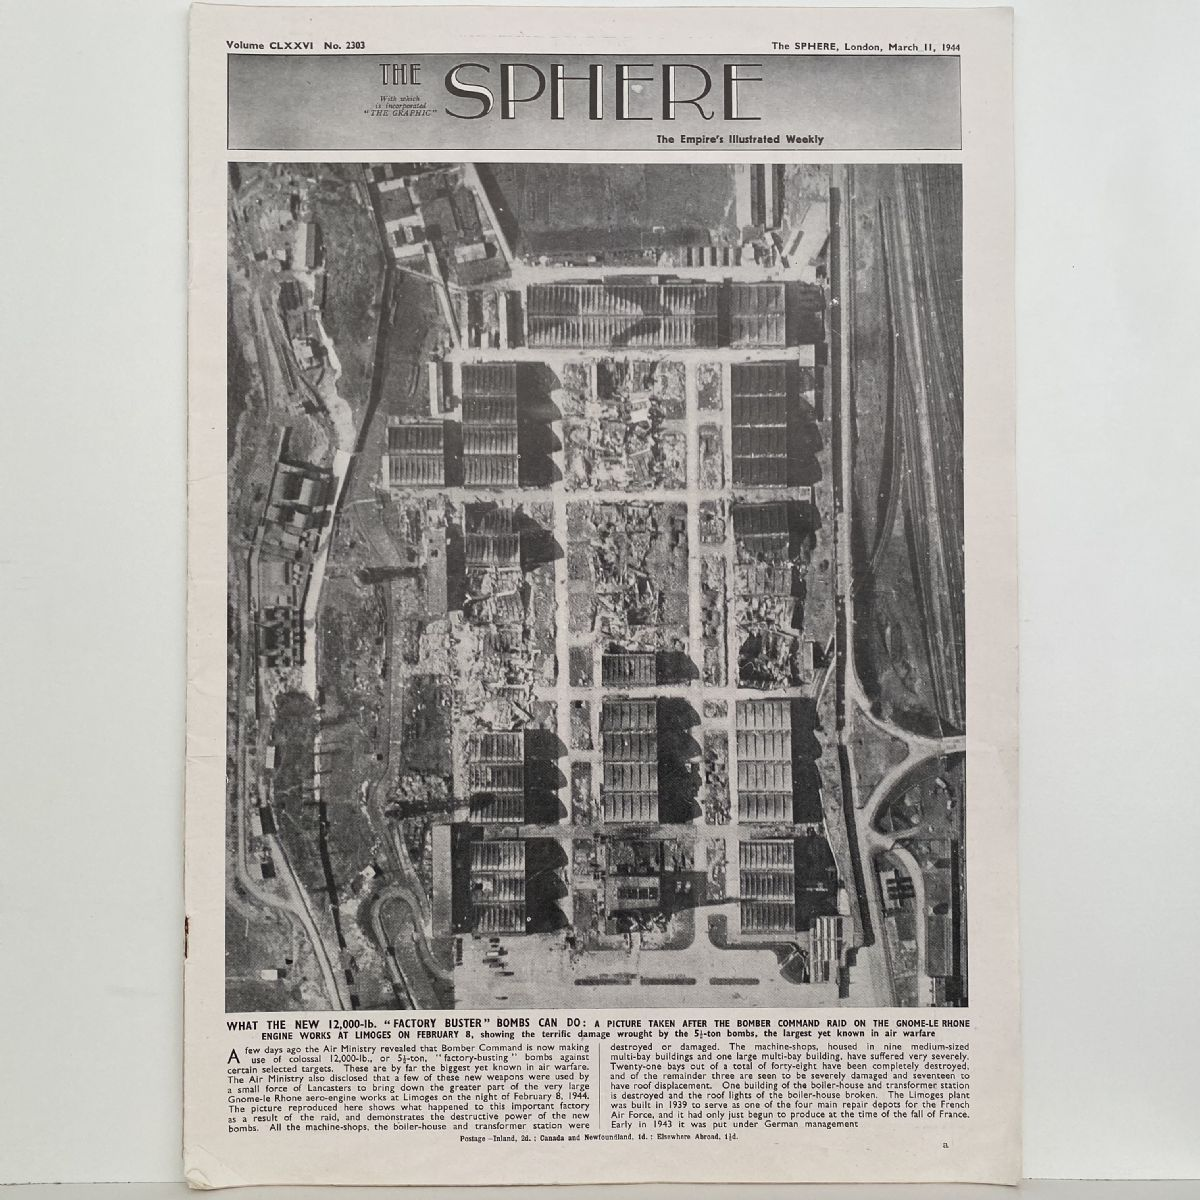 THE SPHERE The Empire's Illustrated Weekly. March 11,1944. No. 2303